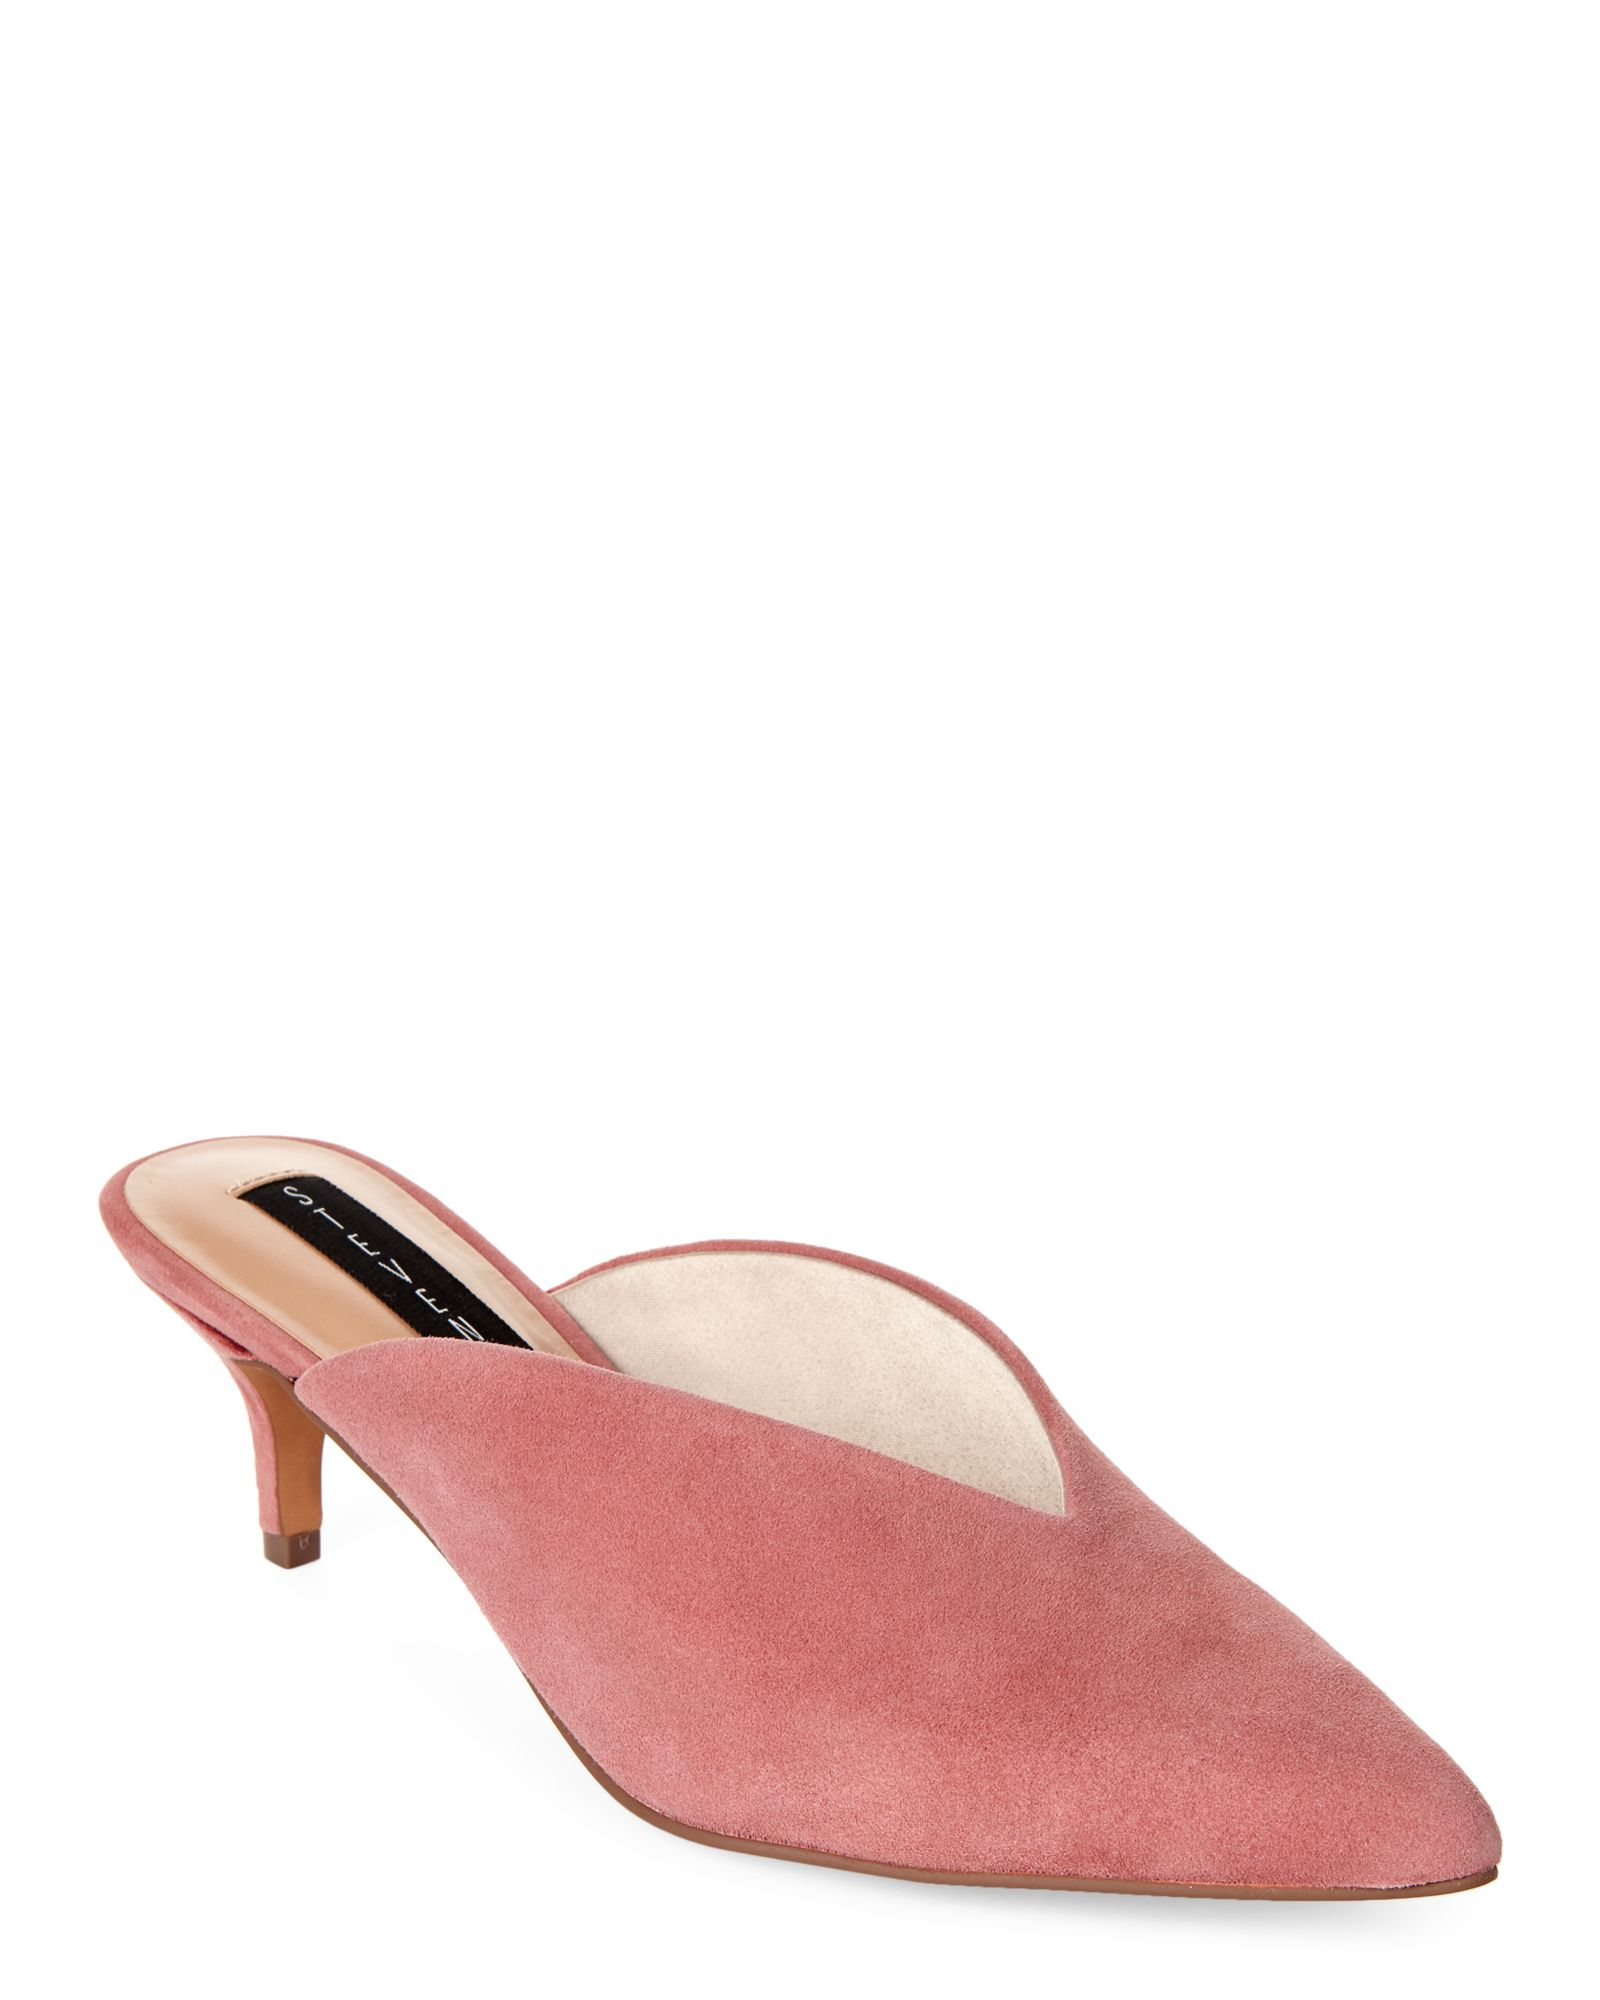 6af9461c429 Rose Ainsley V-Neck Kitten Heel Mule Pumps in 2019 | *Apparel ...